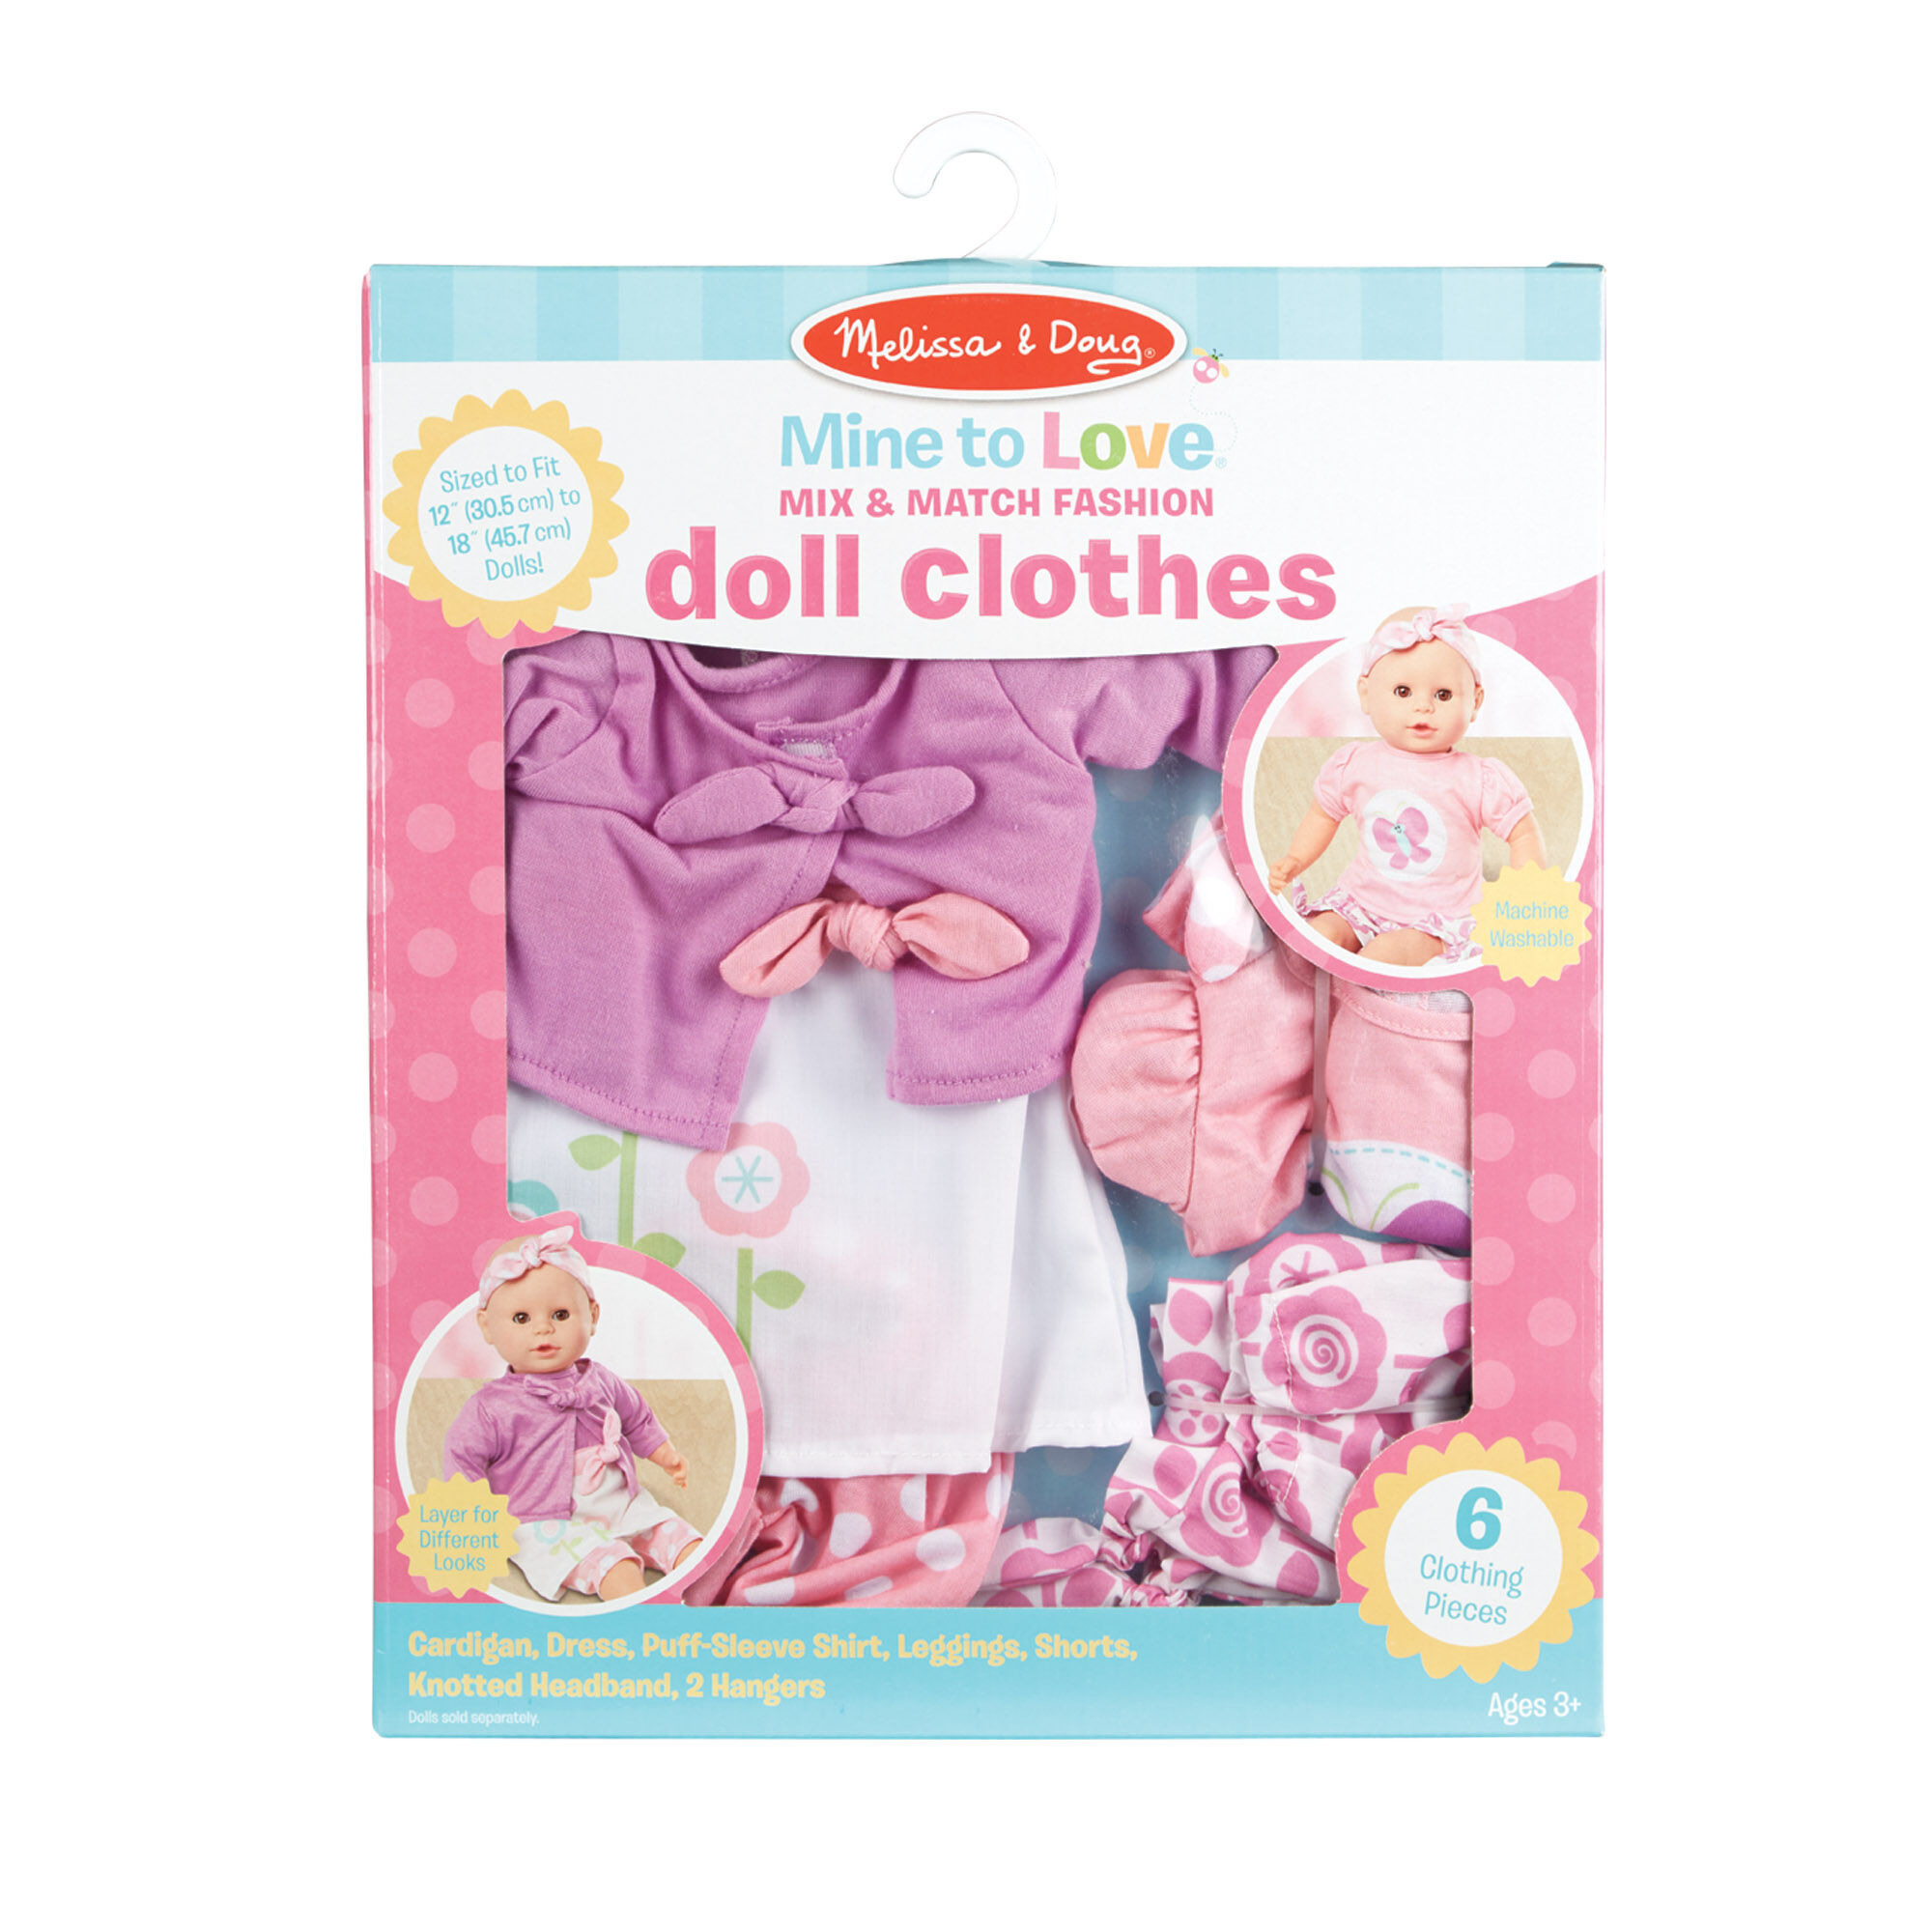 20 Pieces Doll Clothes Hangers Wooden Color for Little Girls Dolls 5 inch